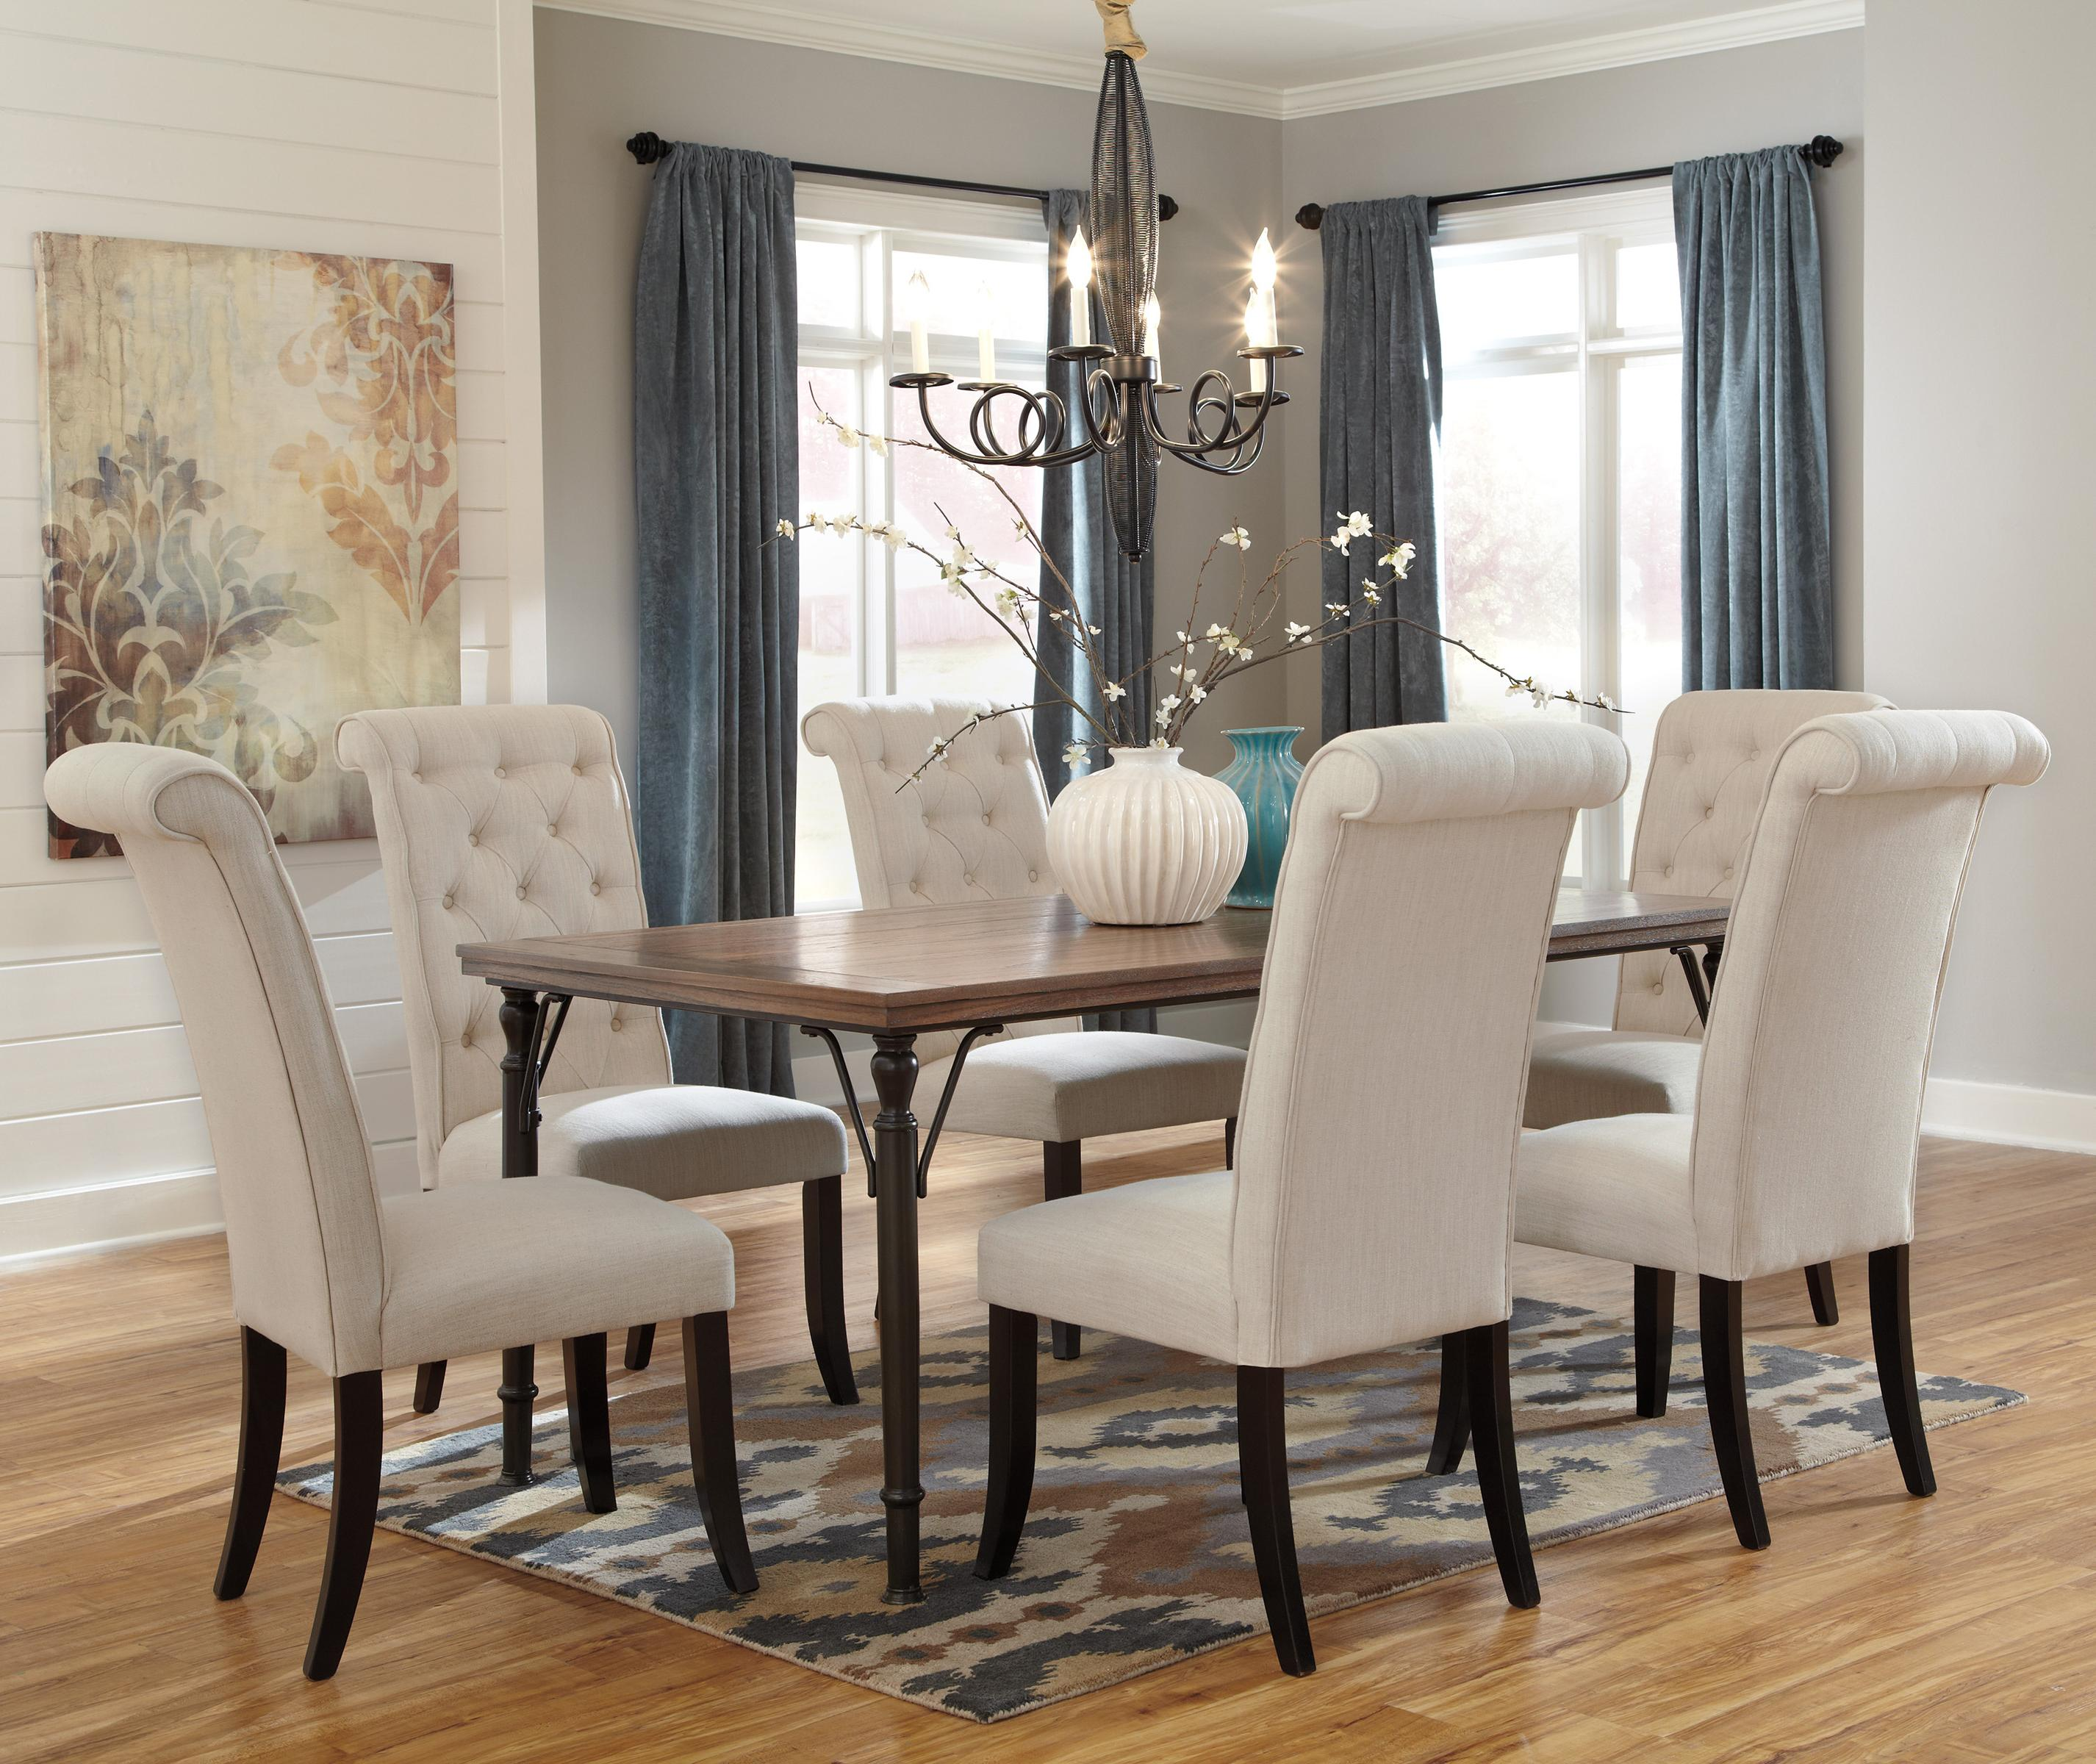 7-Piece Rectangular Dining Room Table Set & 7-Piece Rectangular Dining Room Table Set w/ Wood Top \u0026 Metal Legs ...